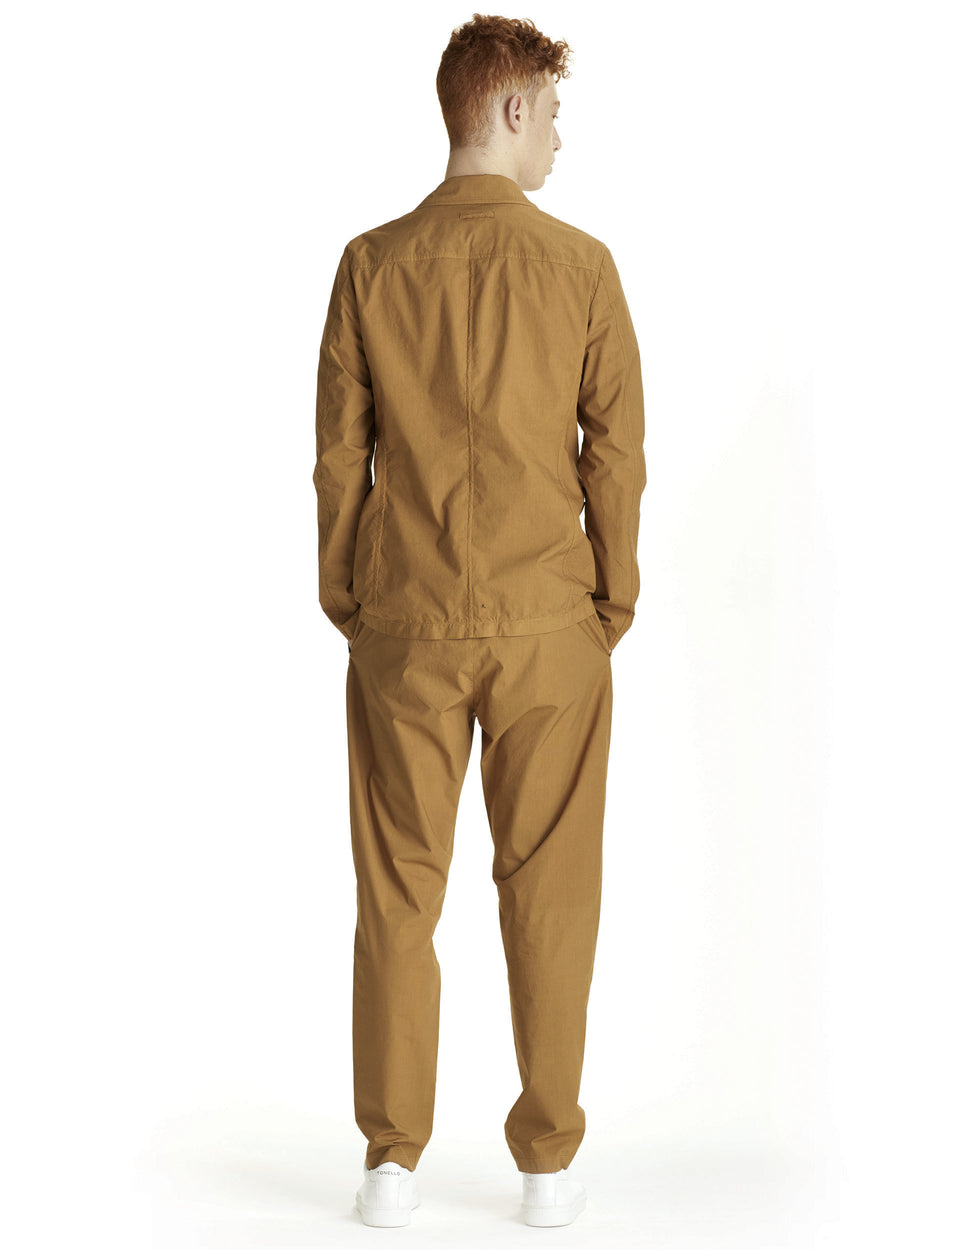 PANTALONI T-EARTH MARRONI - T-Jacket